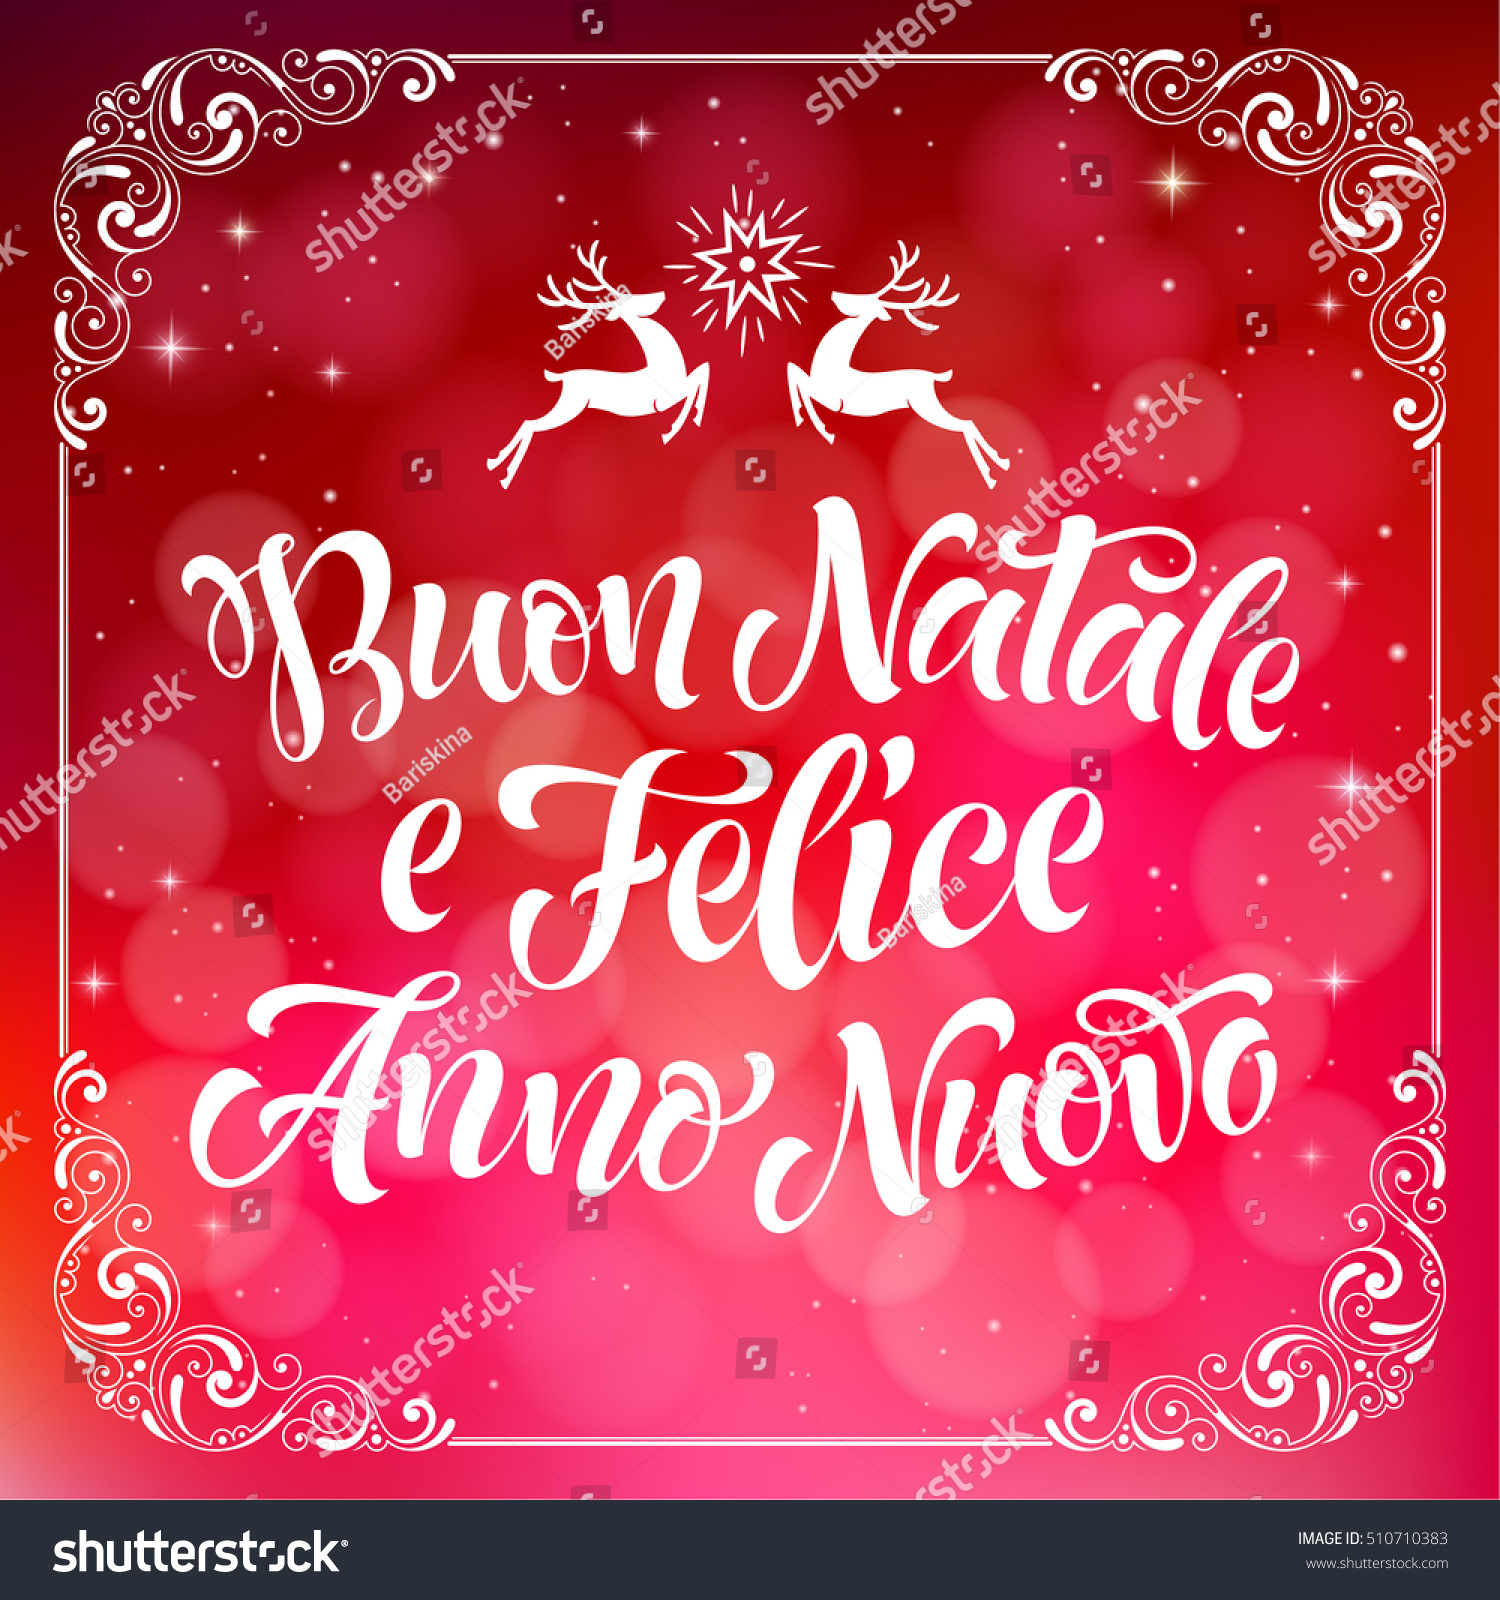 merry christmas and happy new year text in italian buon natale e felice anno nuovo